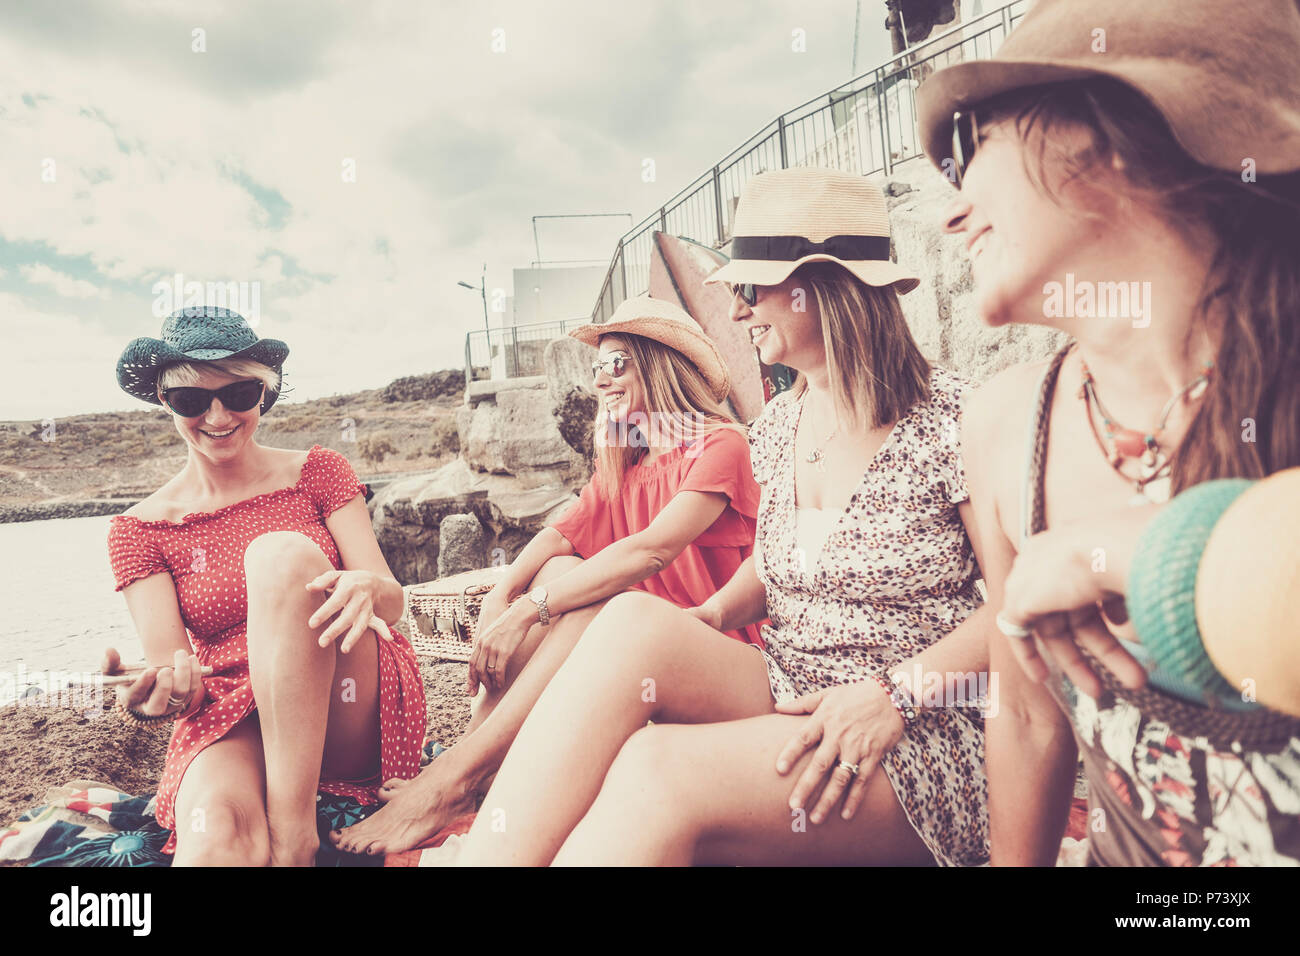 vintage style for group of females people stay together in friendship on vacation near the beach for summer leisure activiy. smiles and laughs for nbe - Stock Image